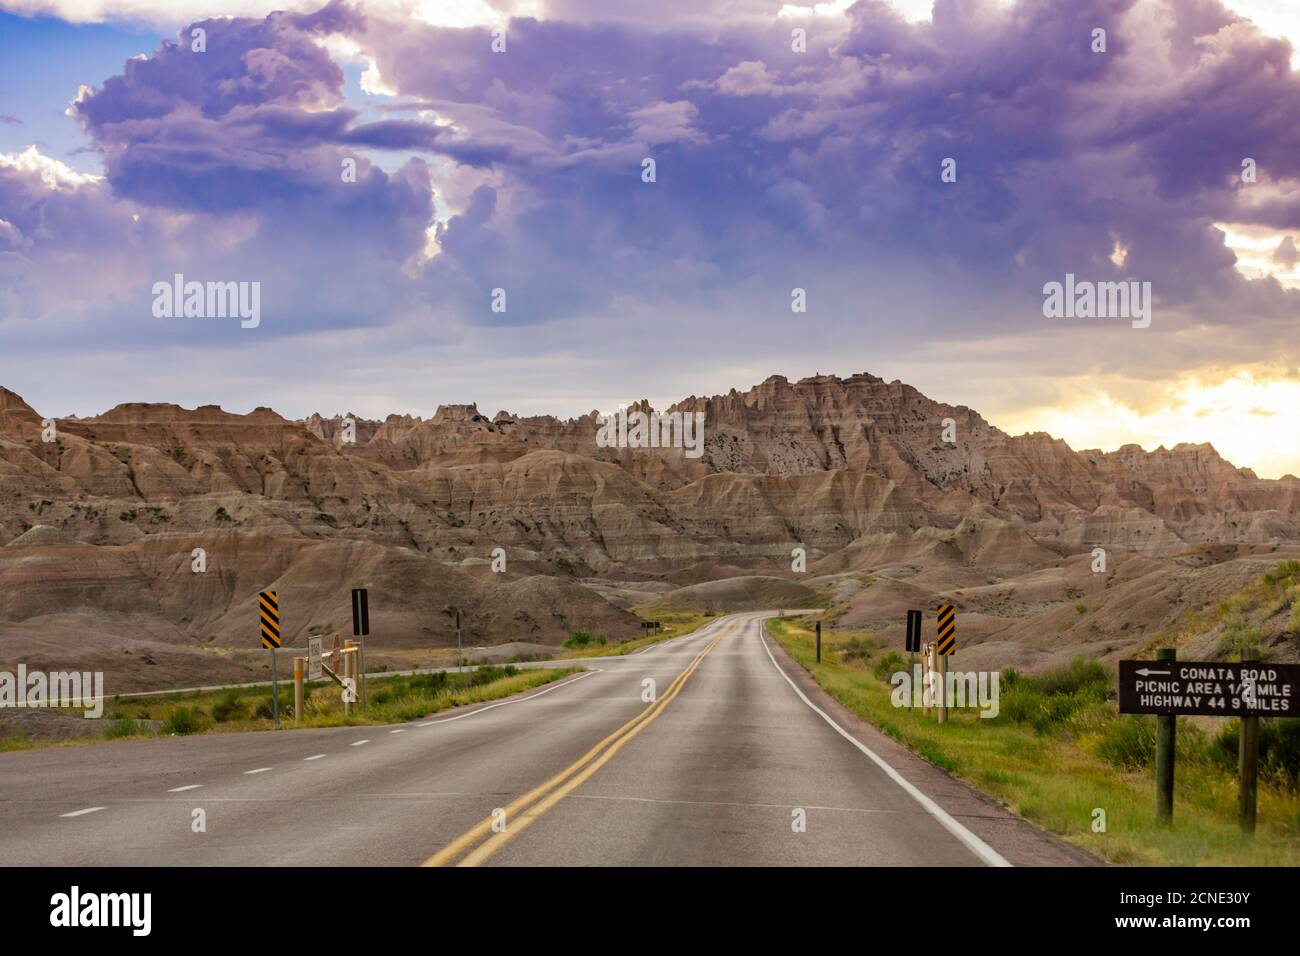 Driving and sightseeing in the Badlands National Park, South Dakota, United States of America Stock Photo